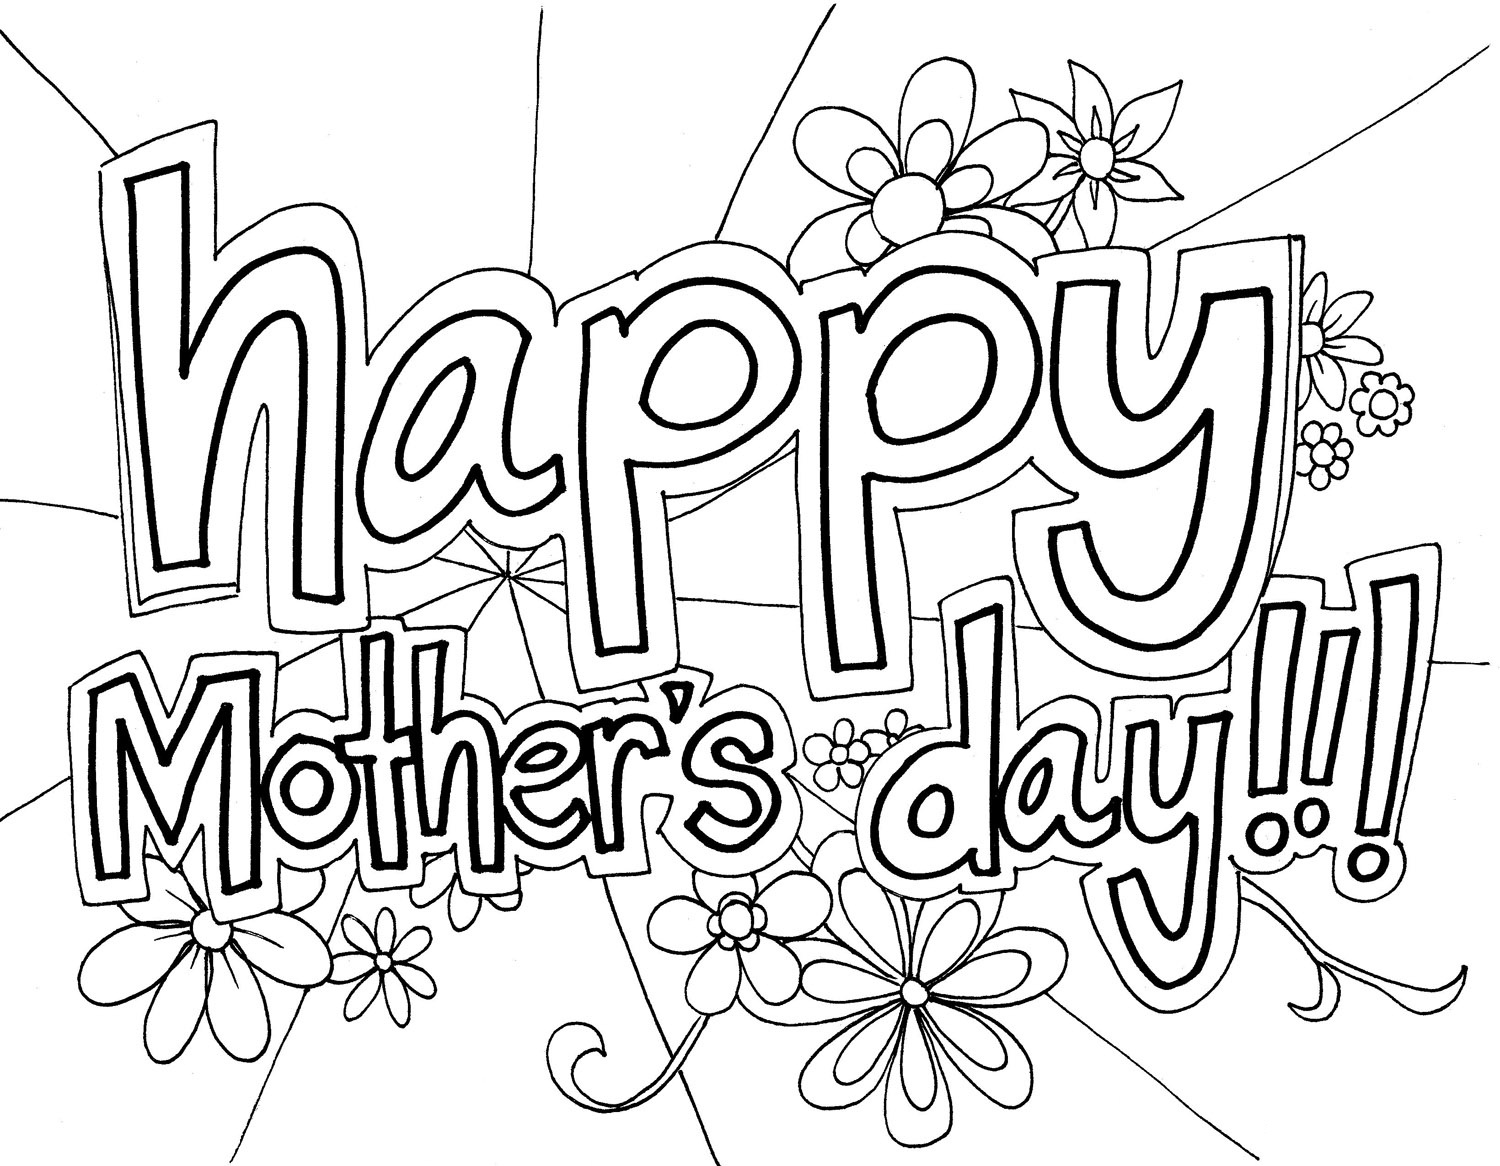 Free Printable Mothers Day Coloring Pages For Kids Mothers Day Colouring Pages